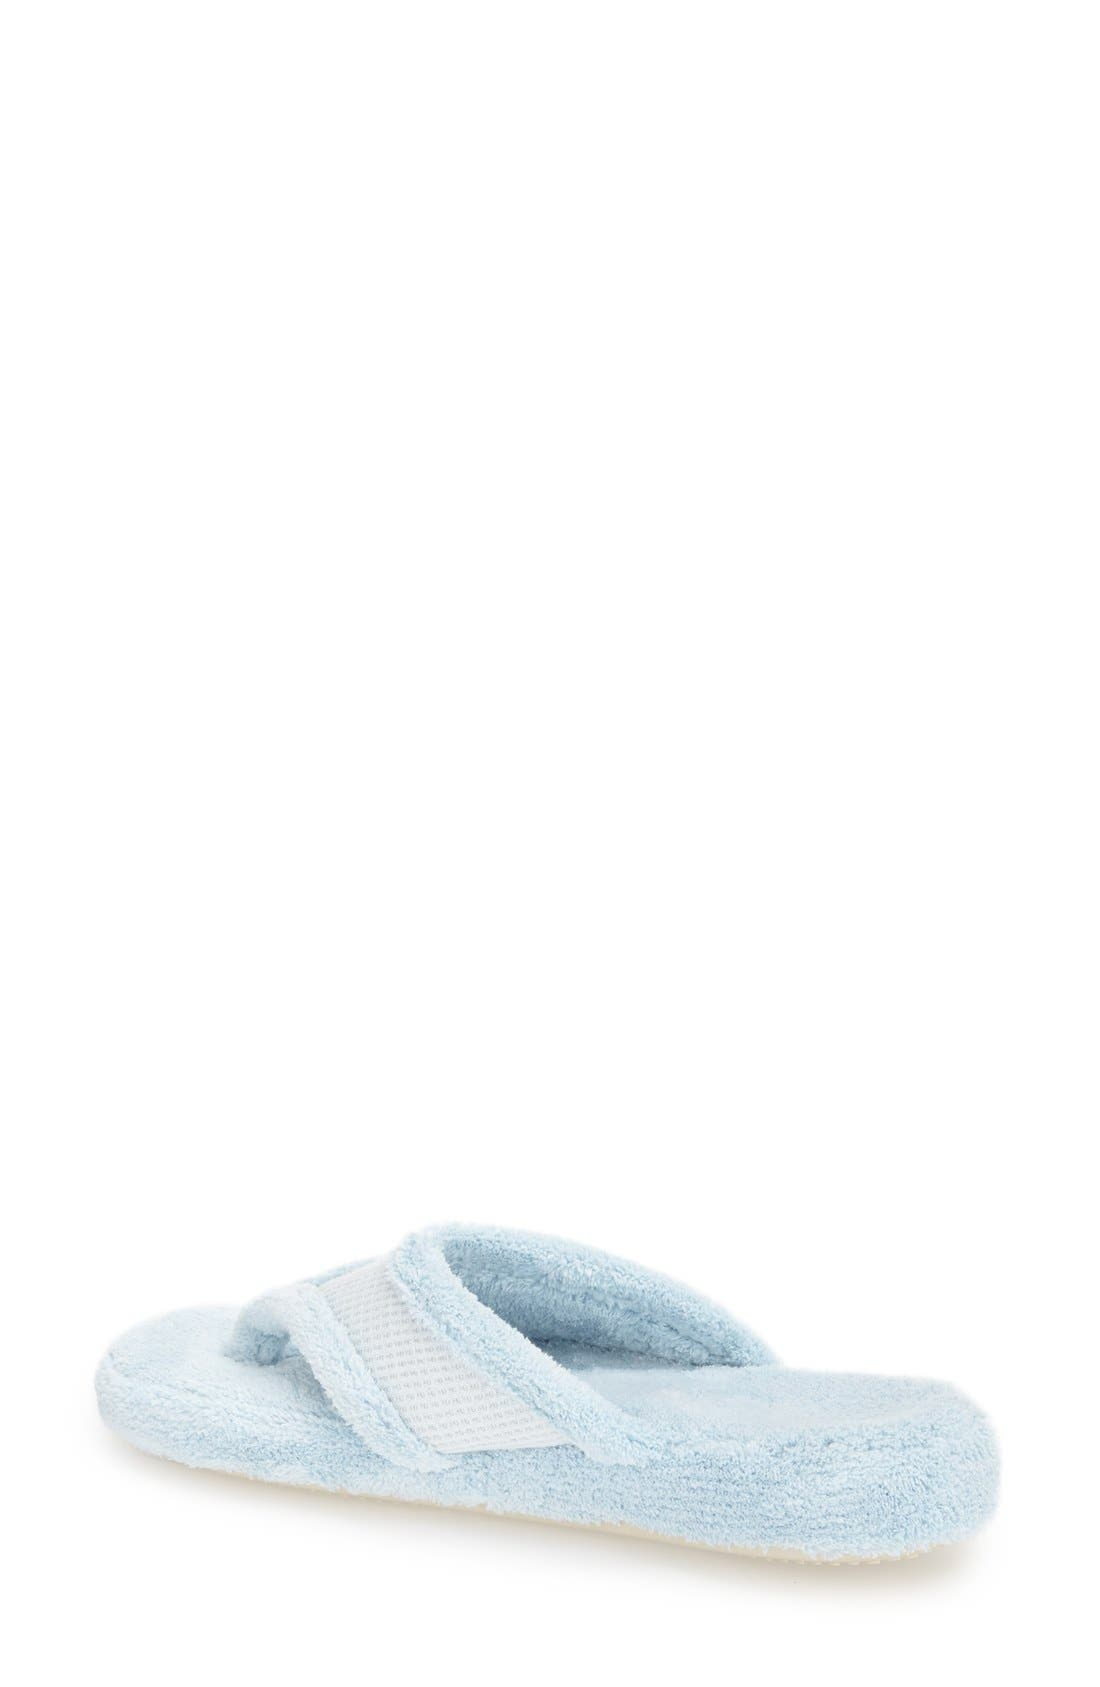 'Waffle' Spa Slipper,                             Alternate thumbnail 2, color,                             POWDER BLUE